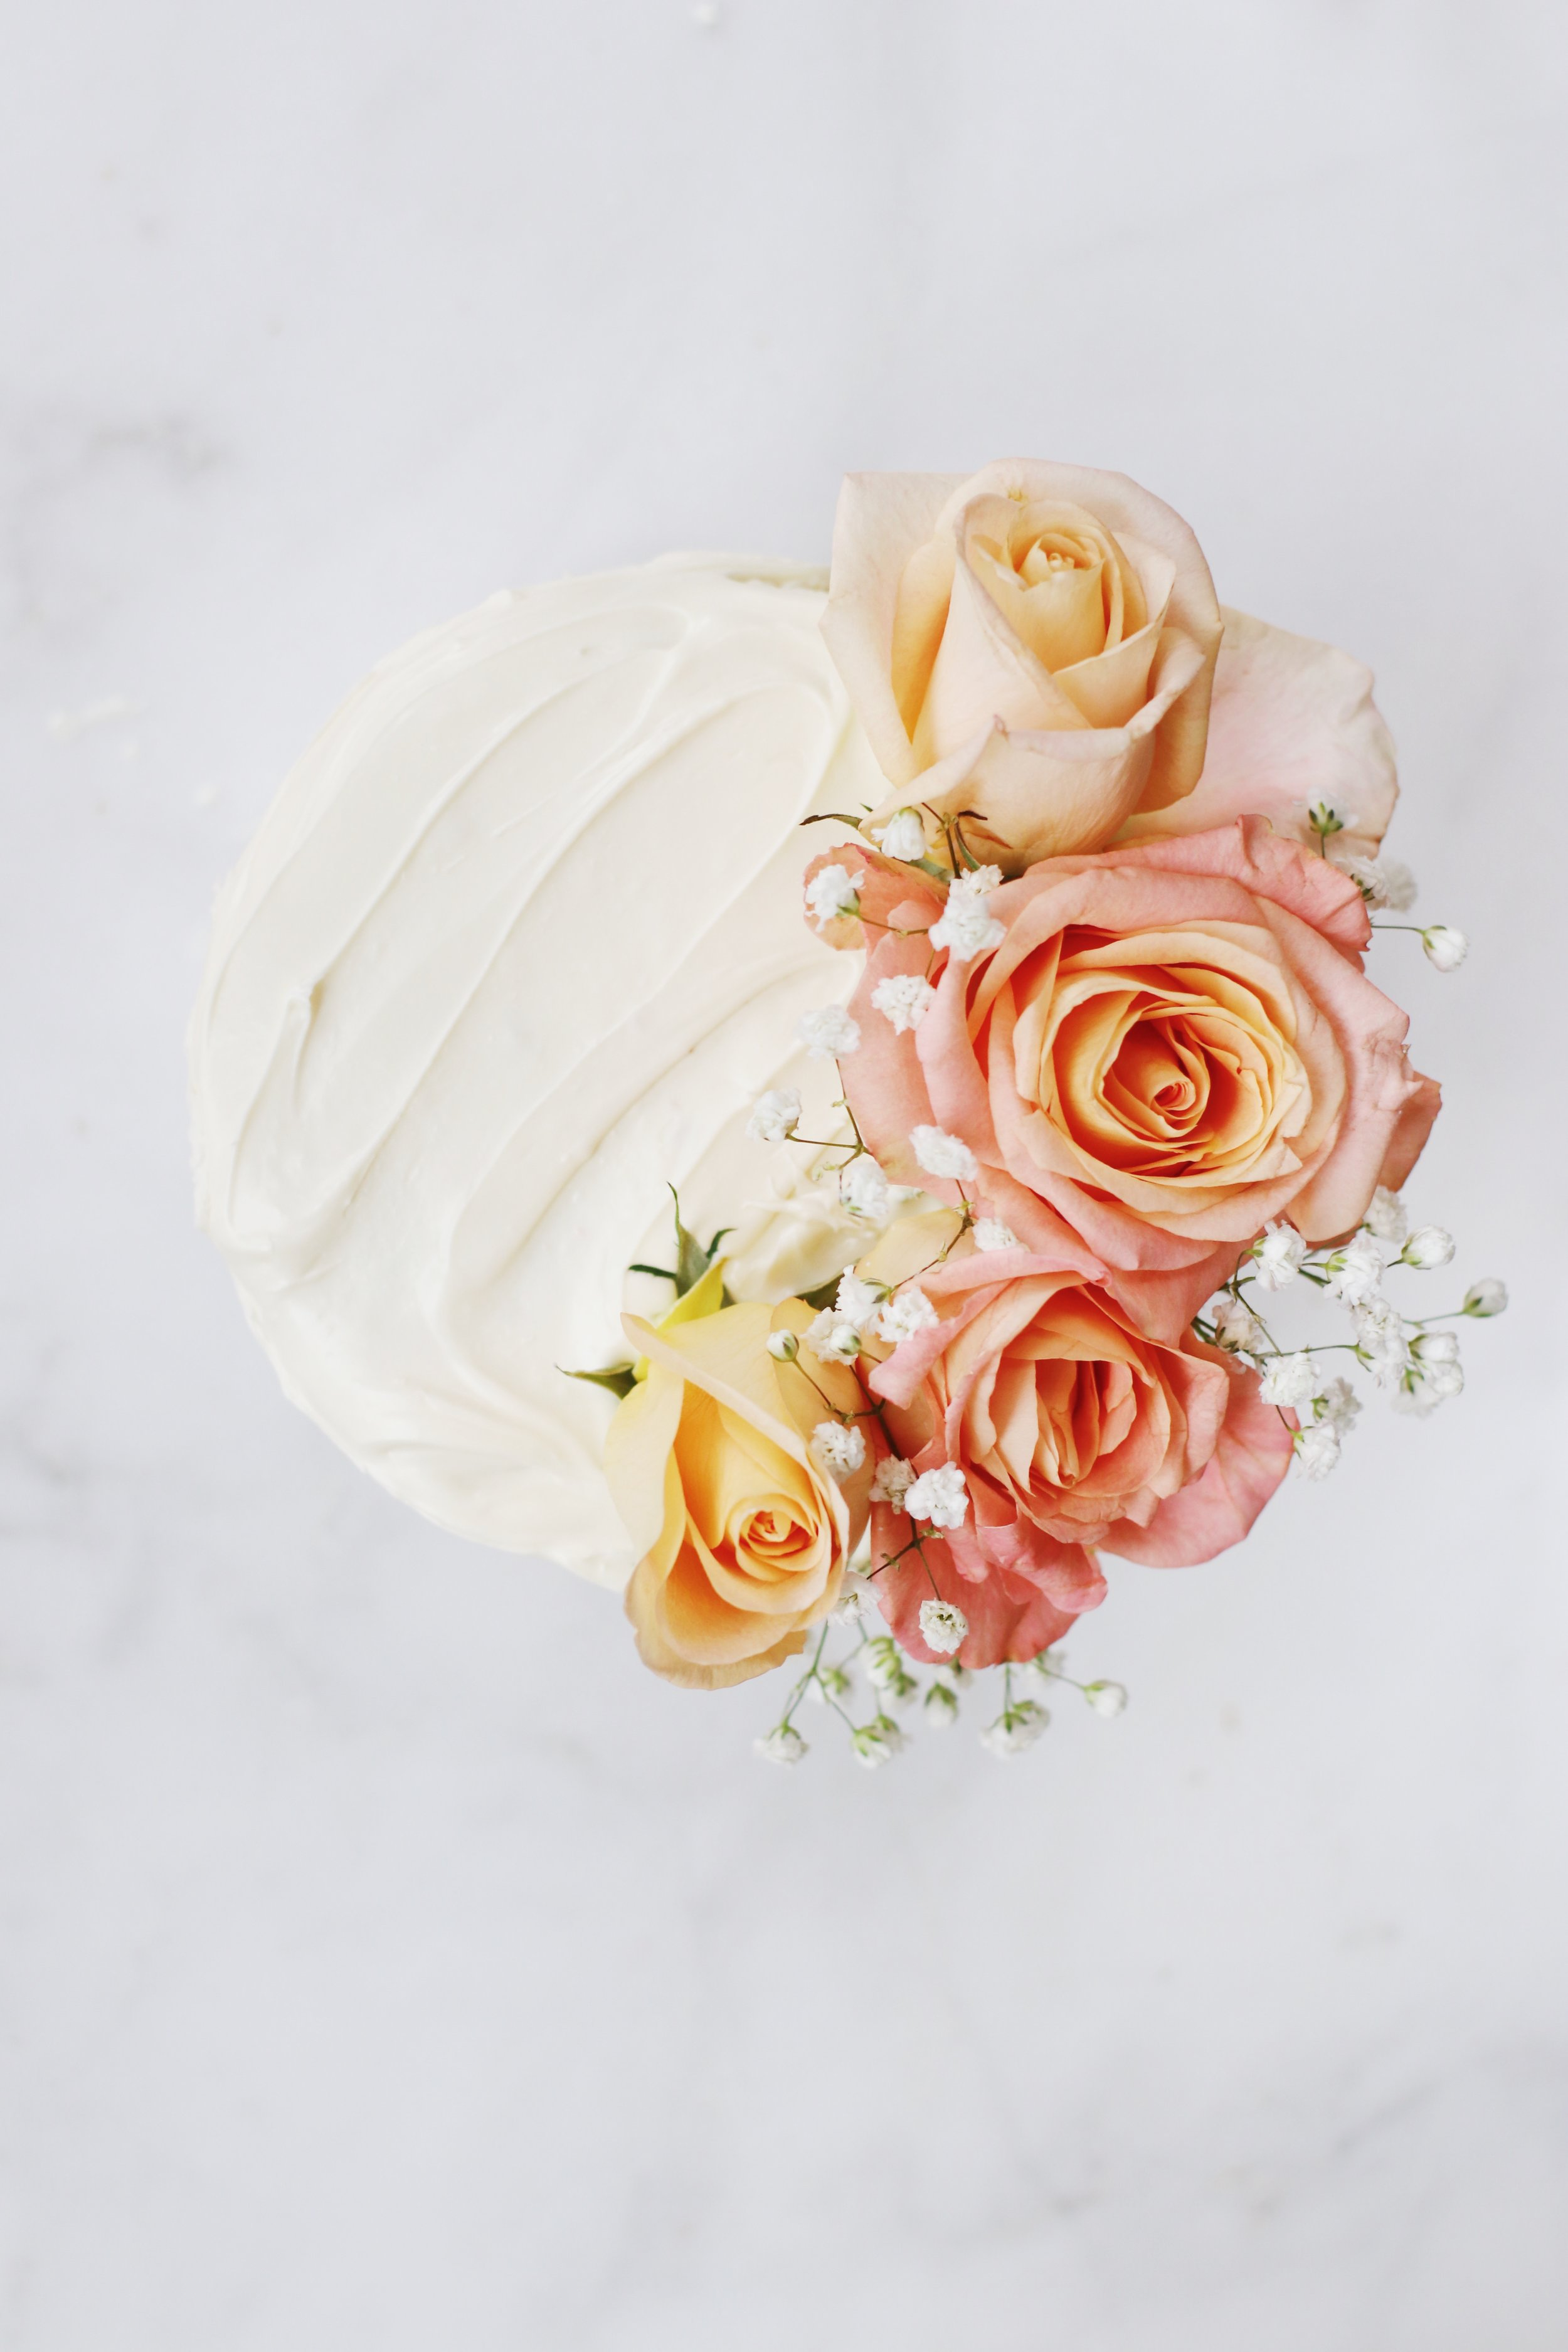 ombre-valentines-cake-flowers-28